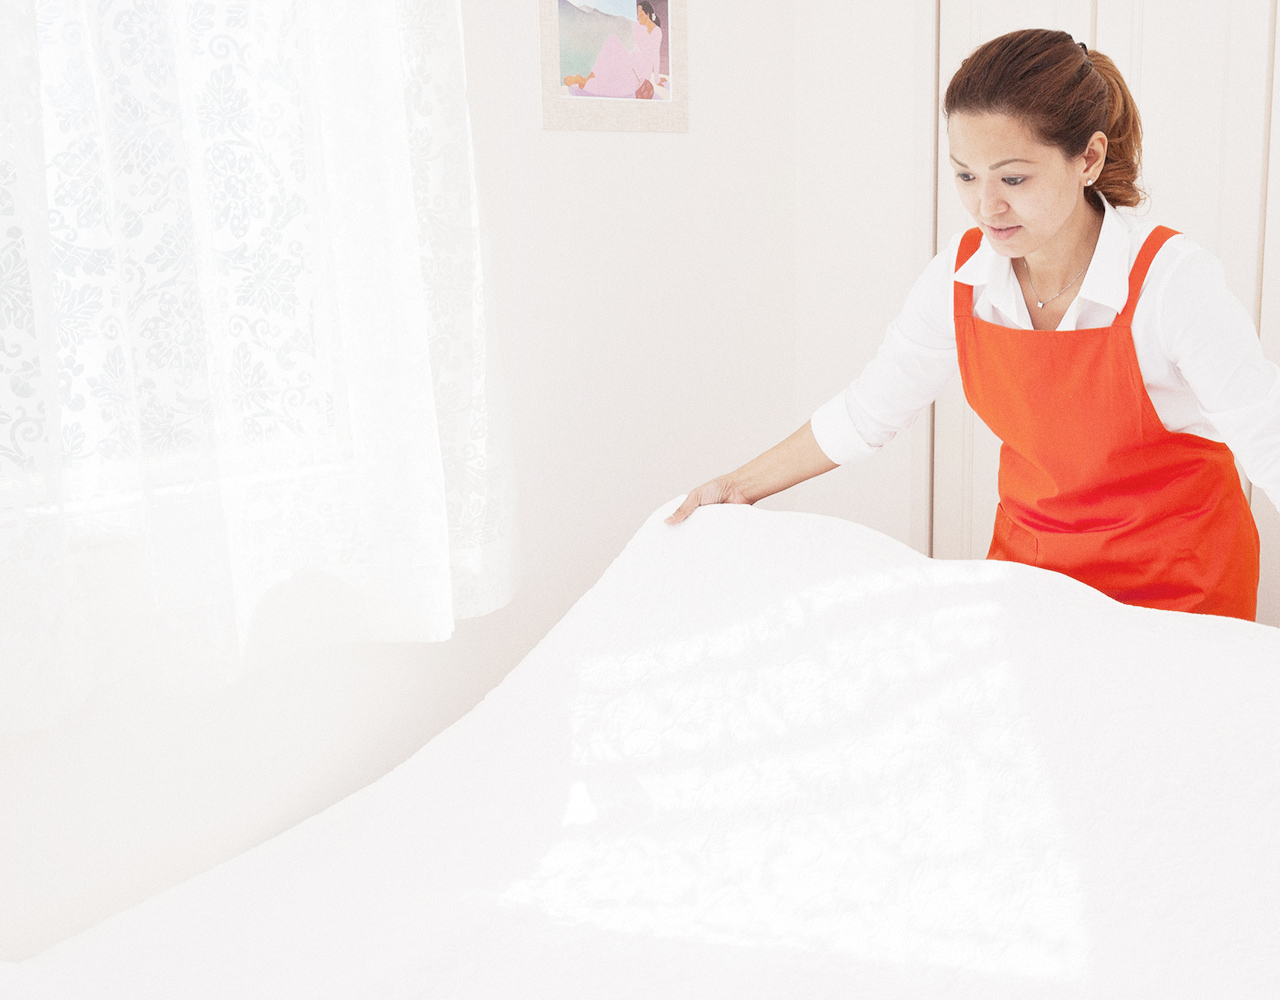 Pinay HOUSEKEEPING SERVICE We're Pinay HOUSEKEEPING SERVICE 私たちはピナイ家政婦サービスです。